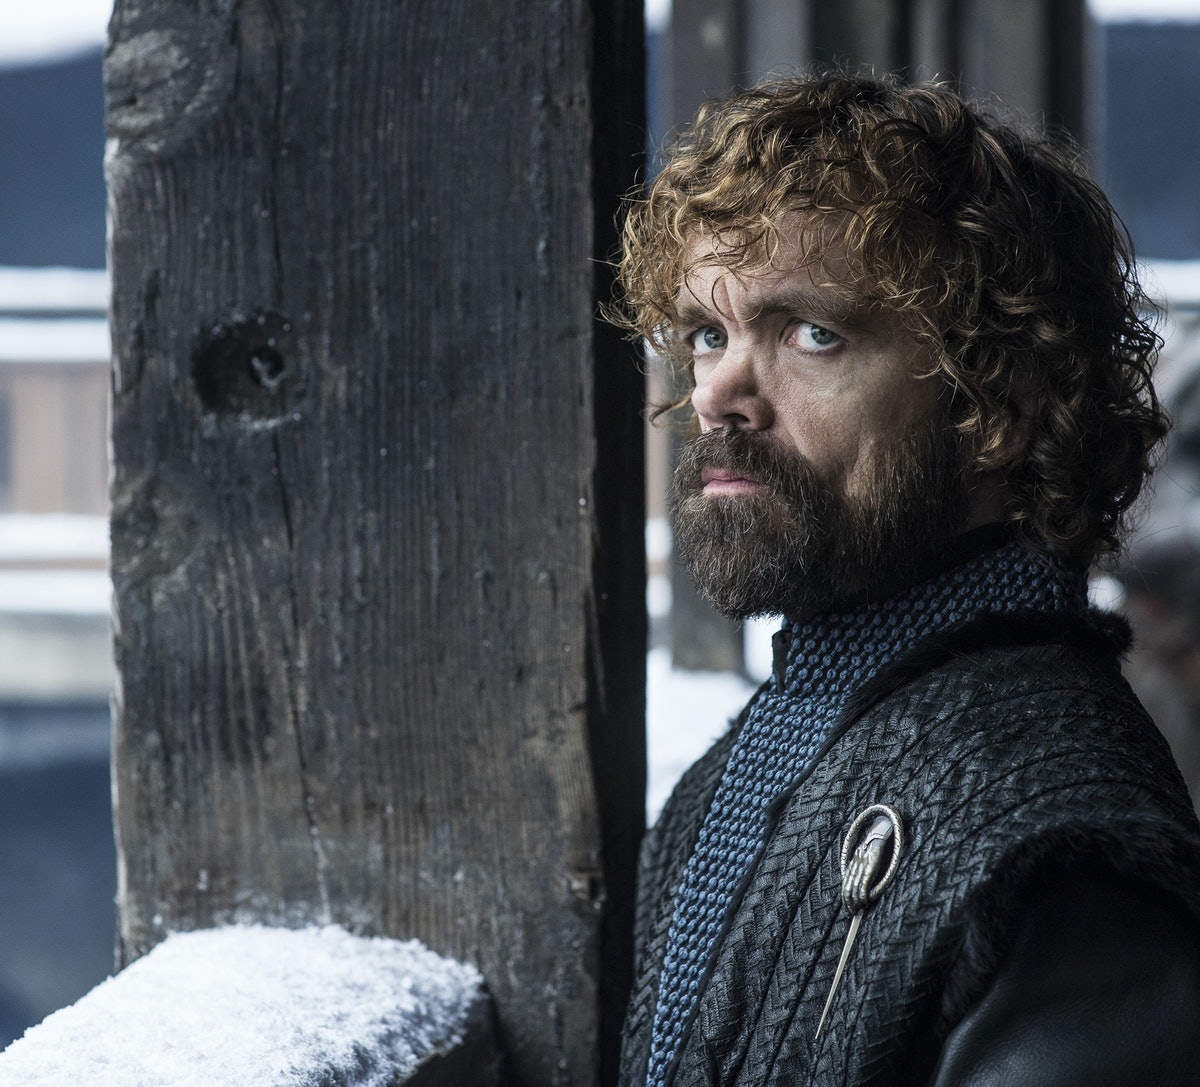 26 Tyrion Lannister Quotes From 'Game Of Thrones' That Prove He's The King Of Wordplay